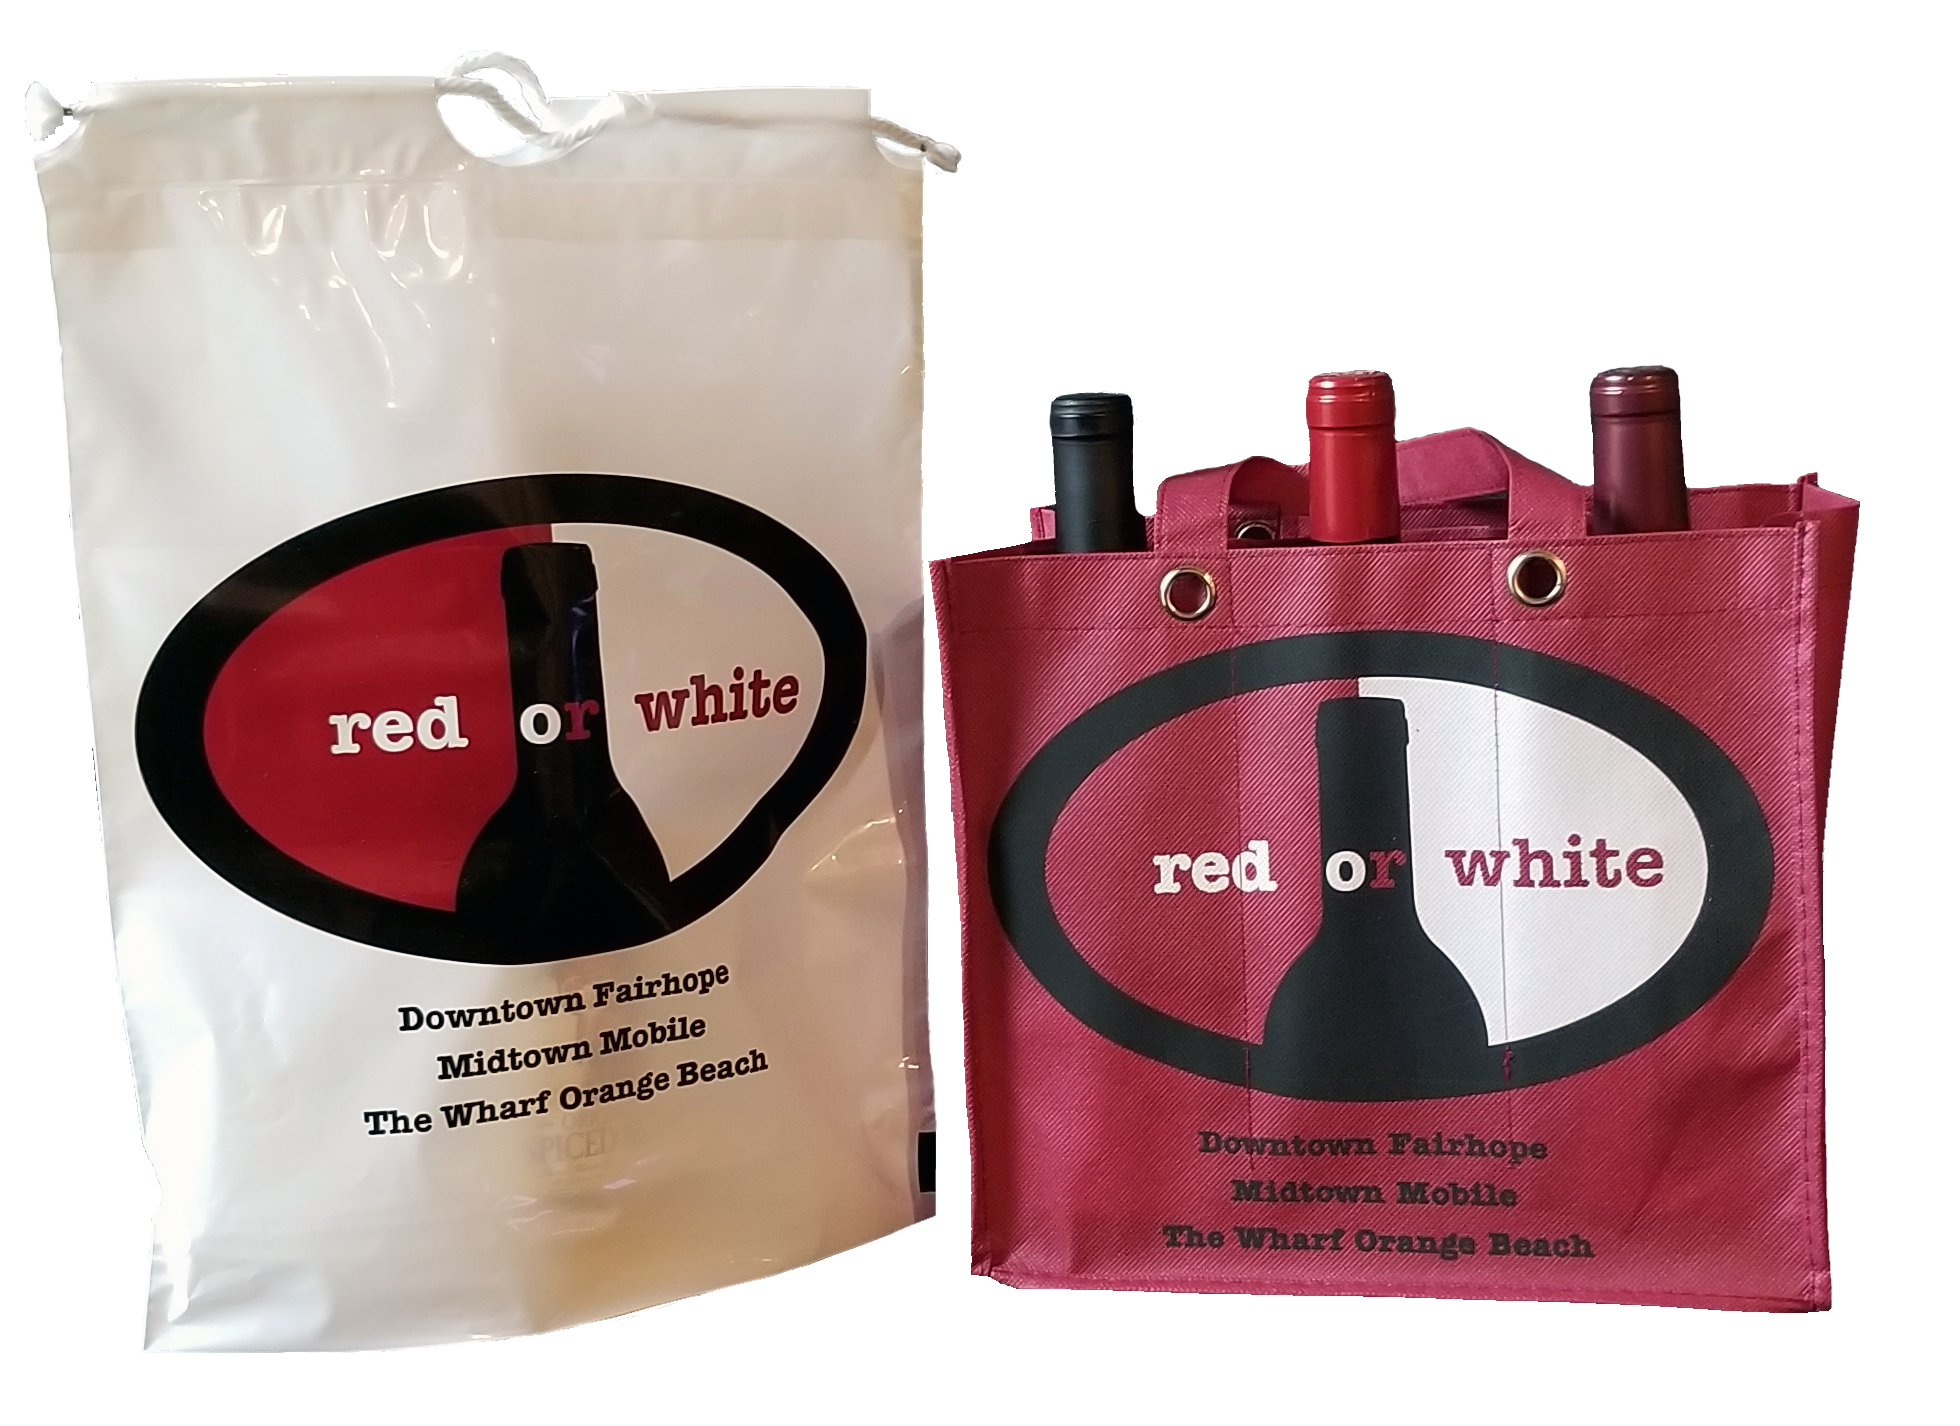 Carry 6 Bottles Of Wine And It Stands Out With Their Logo By Using A Red Bag They Were Able To Print 2 Colors But Have Three Represented